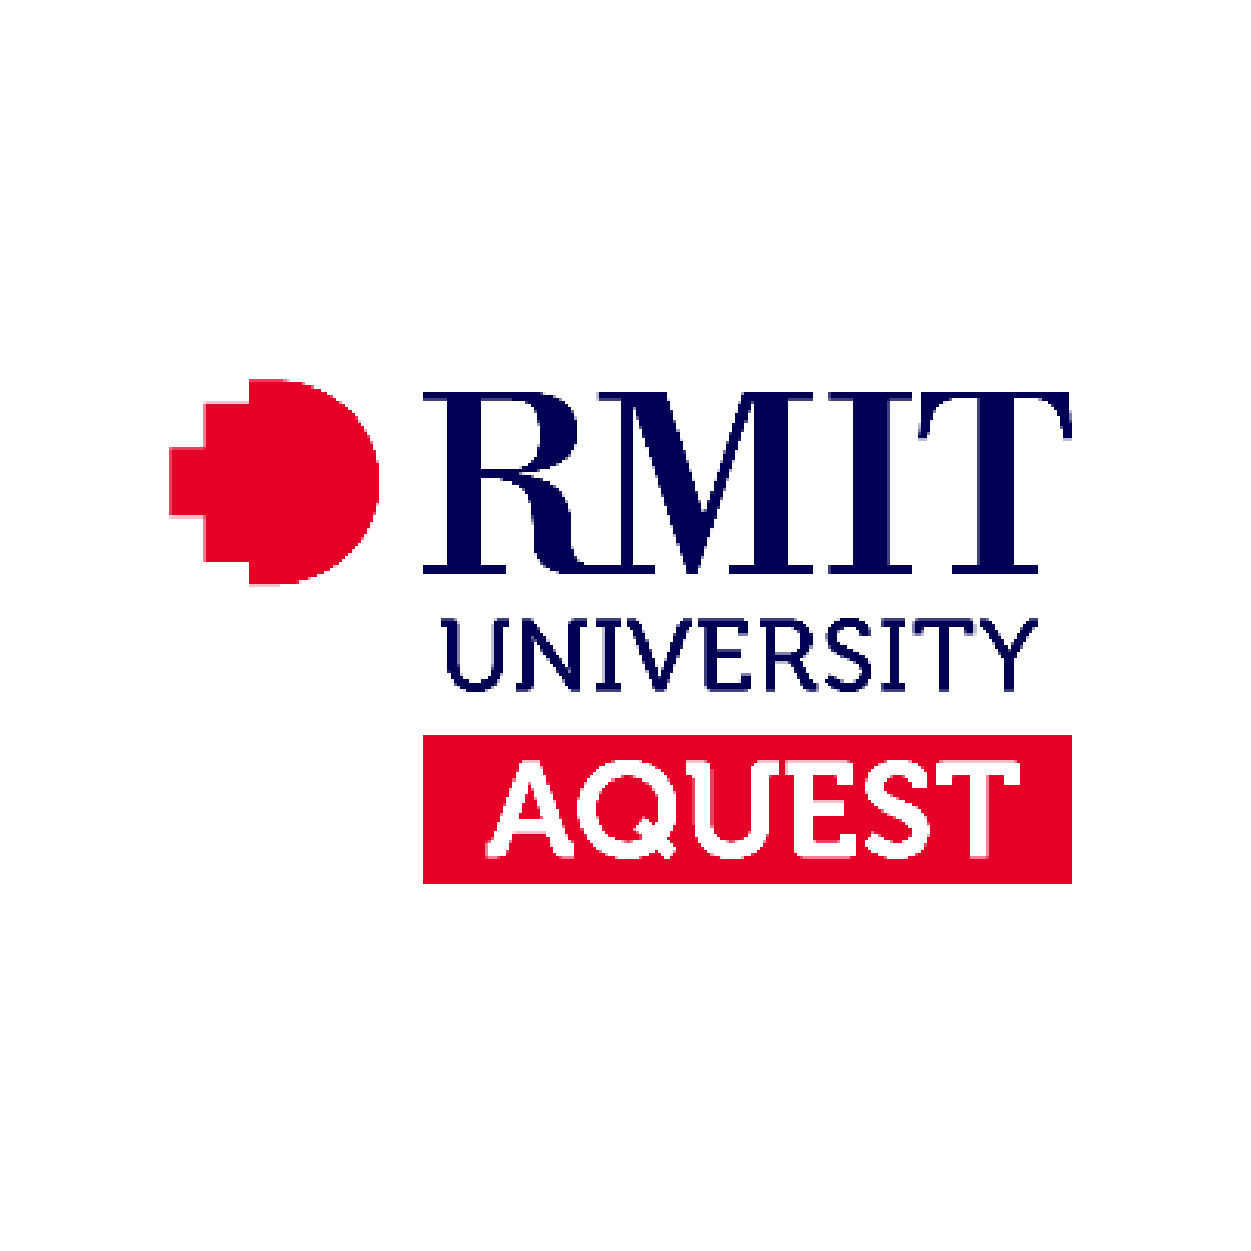 AQUEST, RMIT University logo